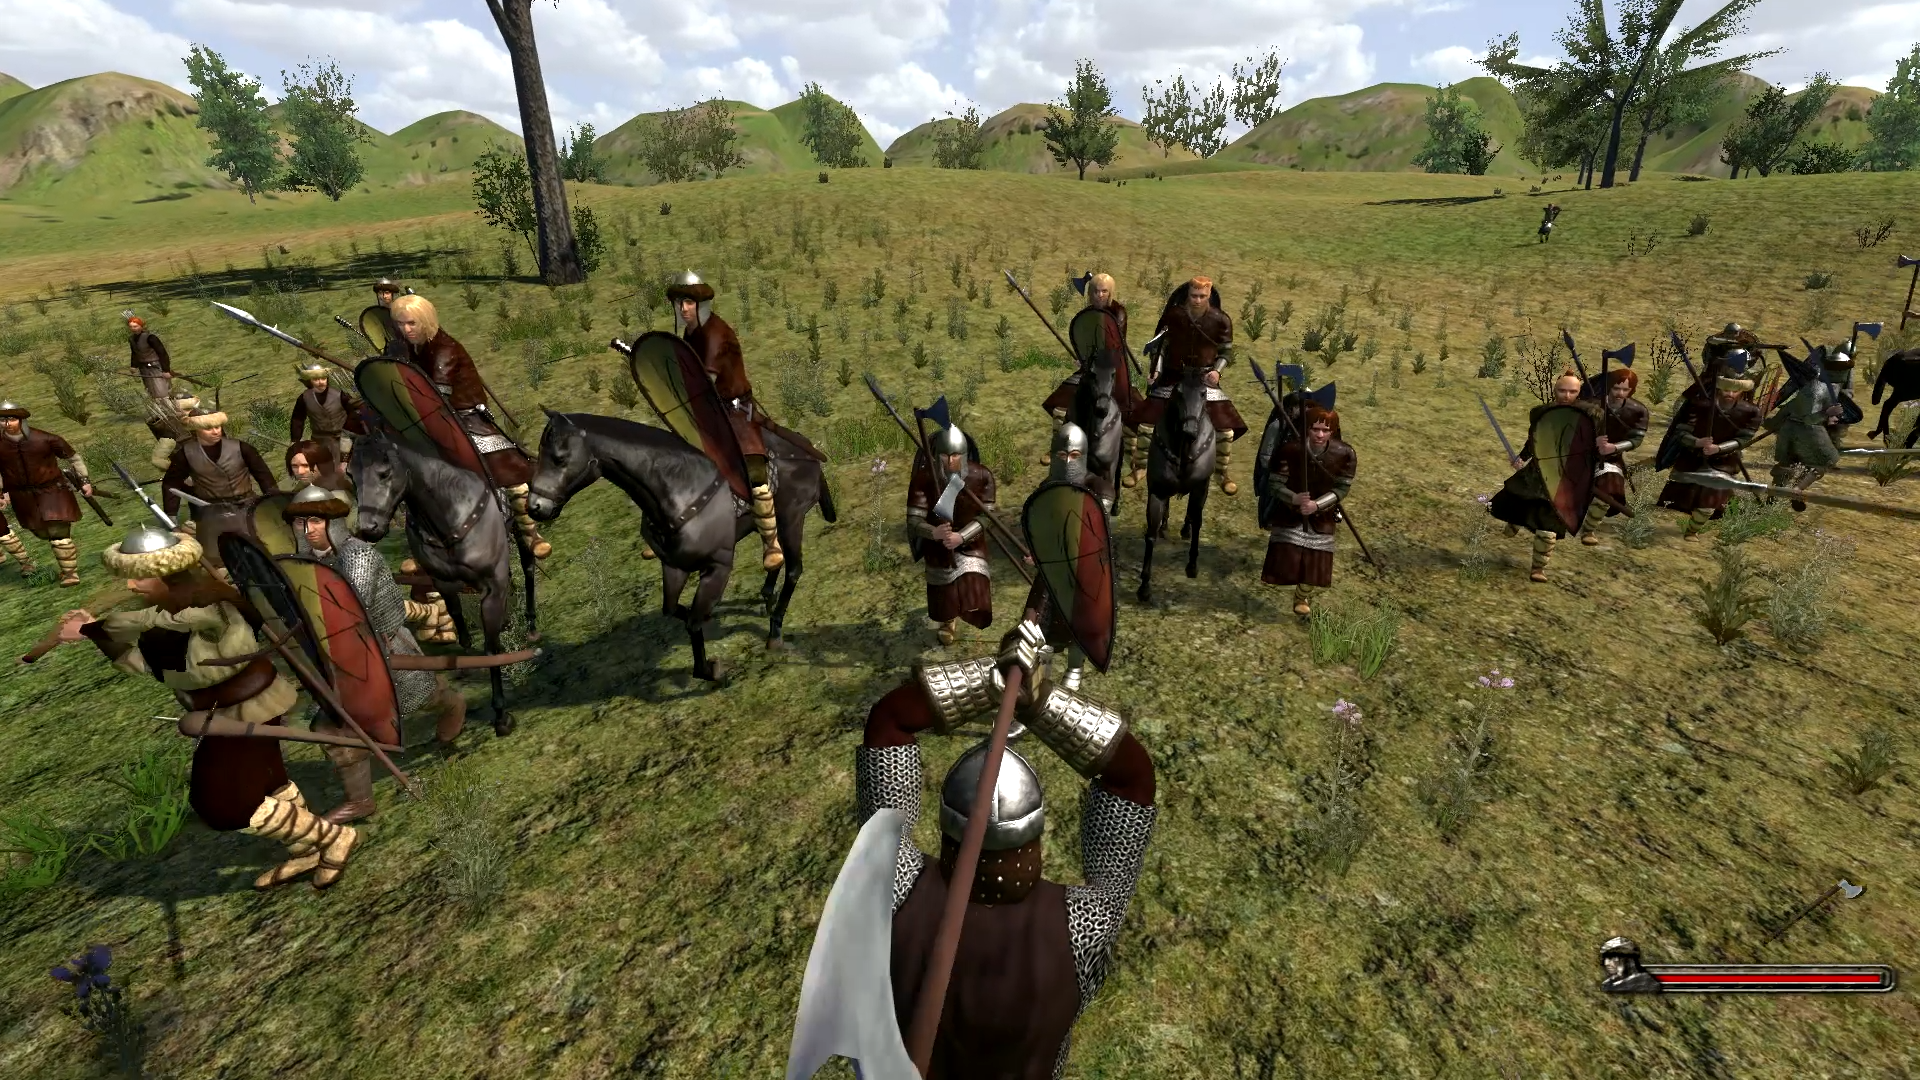 Mount and blade 2 release date in Sydney